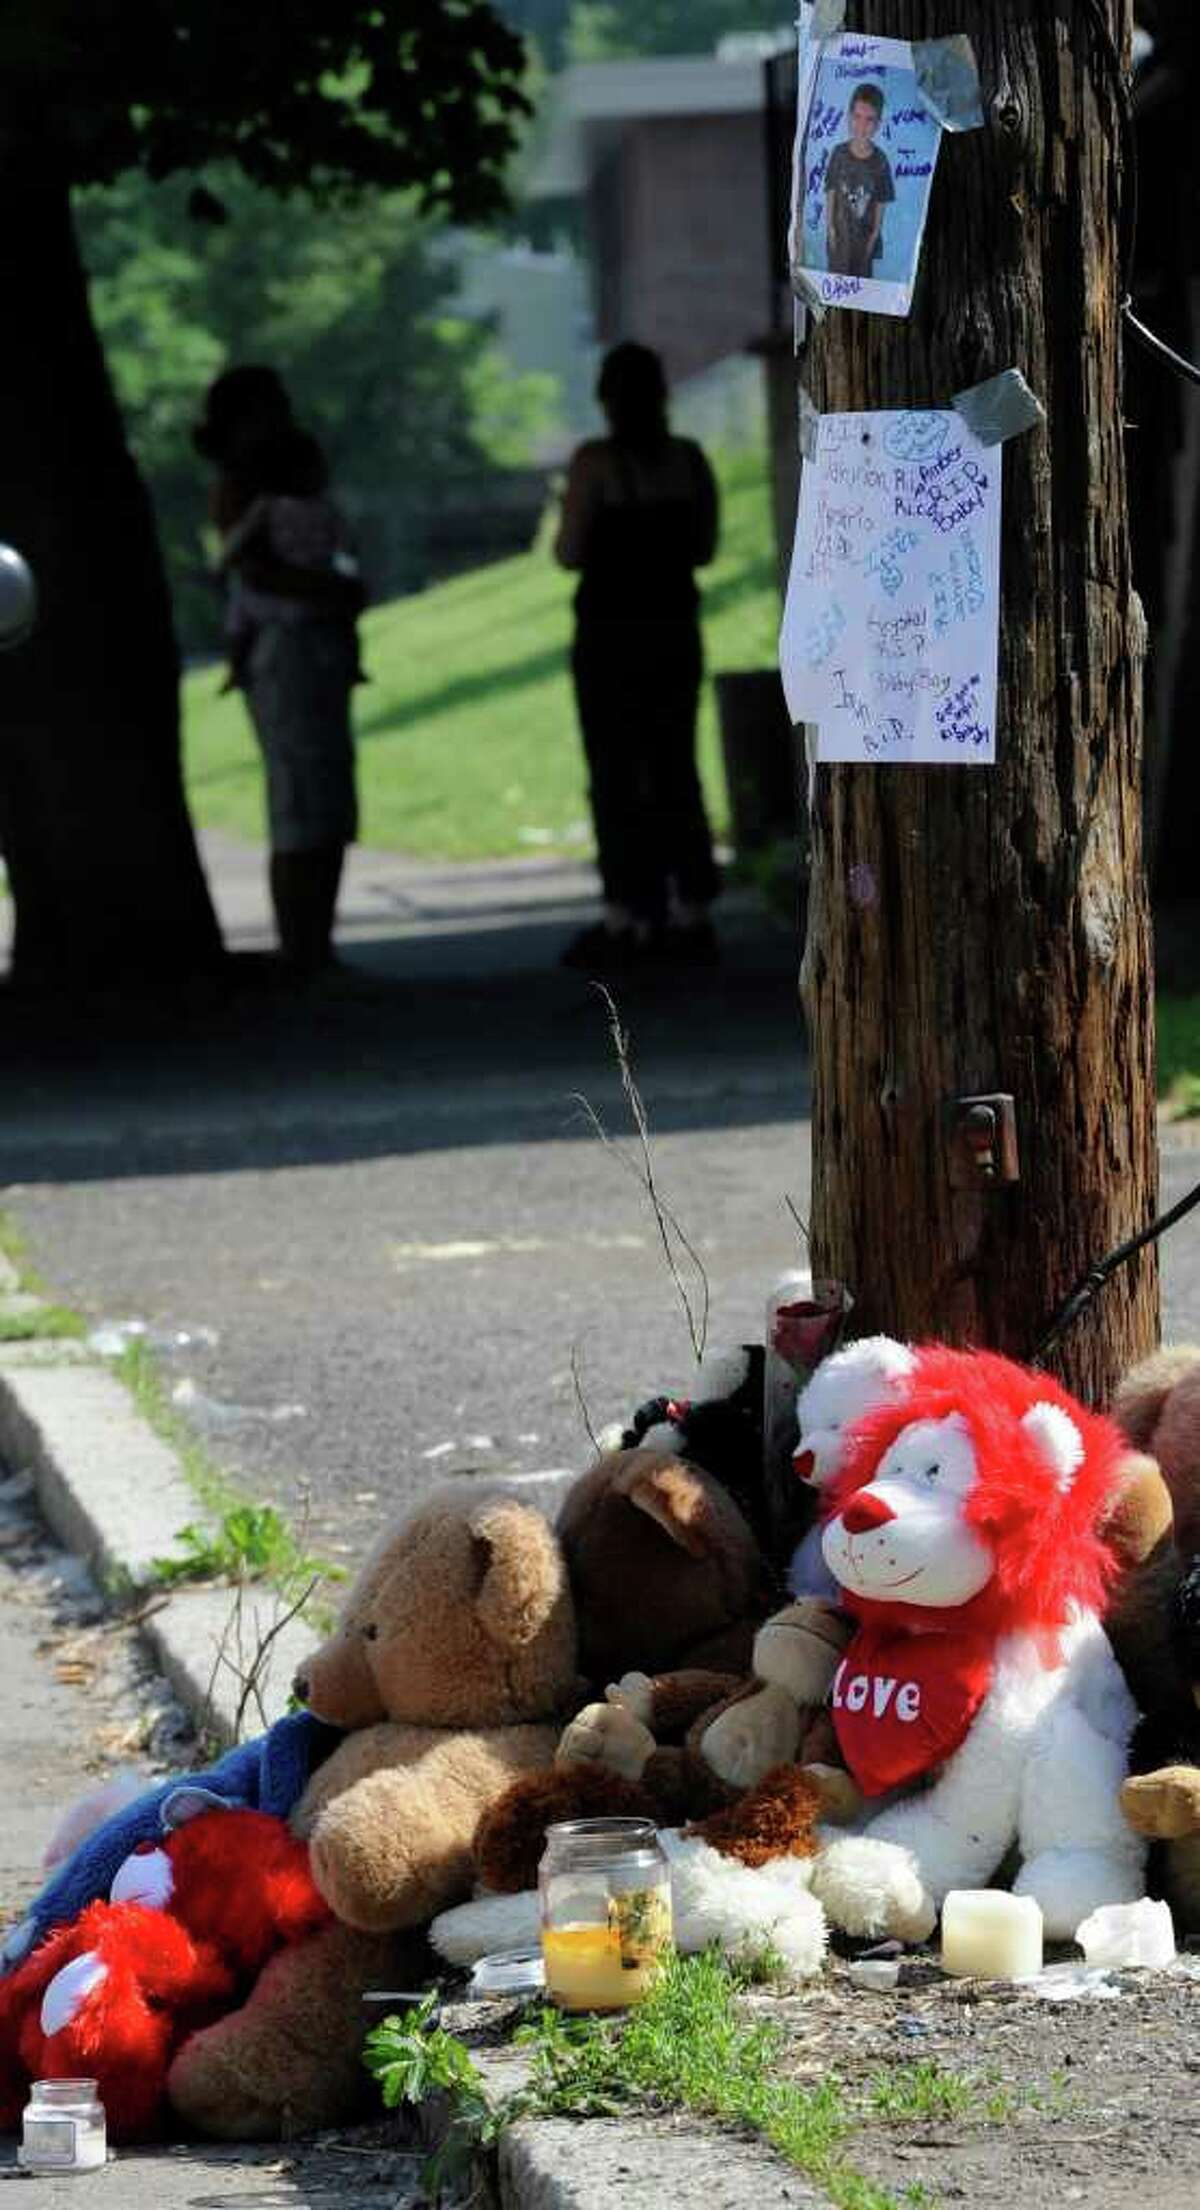 A memorial is set up on 10th Street just north of Rensselaer Street in Troy for Jahvion Perez, who was killed by Roy Sanders of Troy in a hit-and-run accident on Memorial Day. (Skip Dickstein / Times Union )